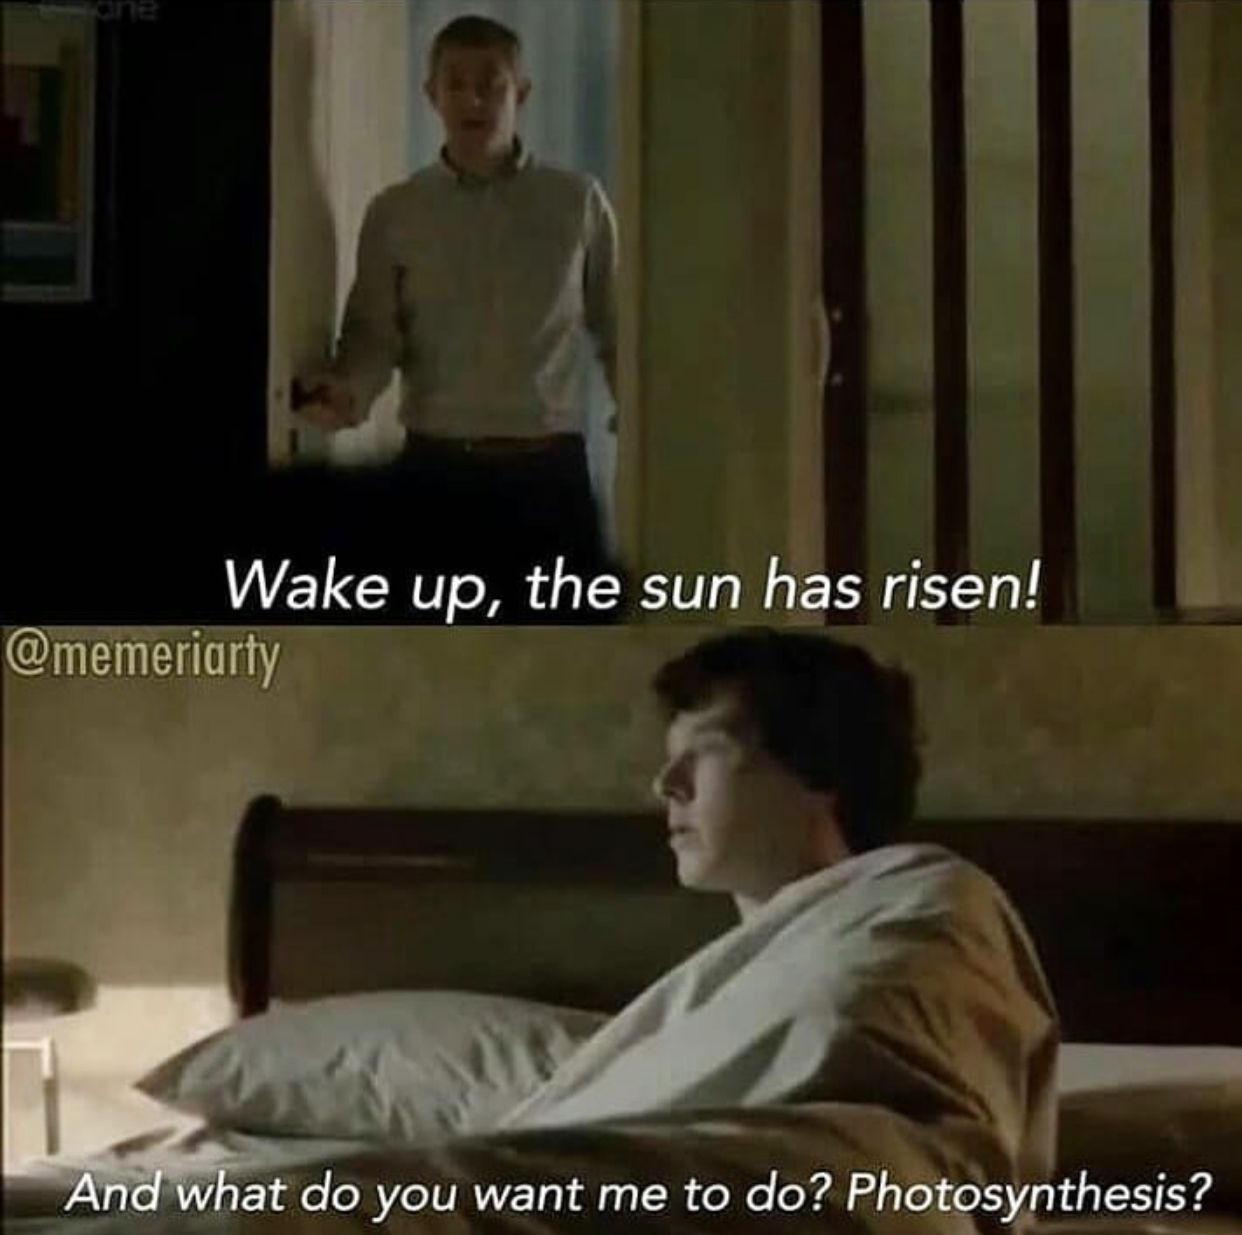 I think this is hilarious because no one says the sun has risen